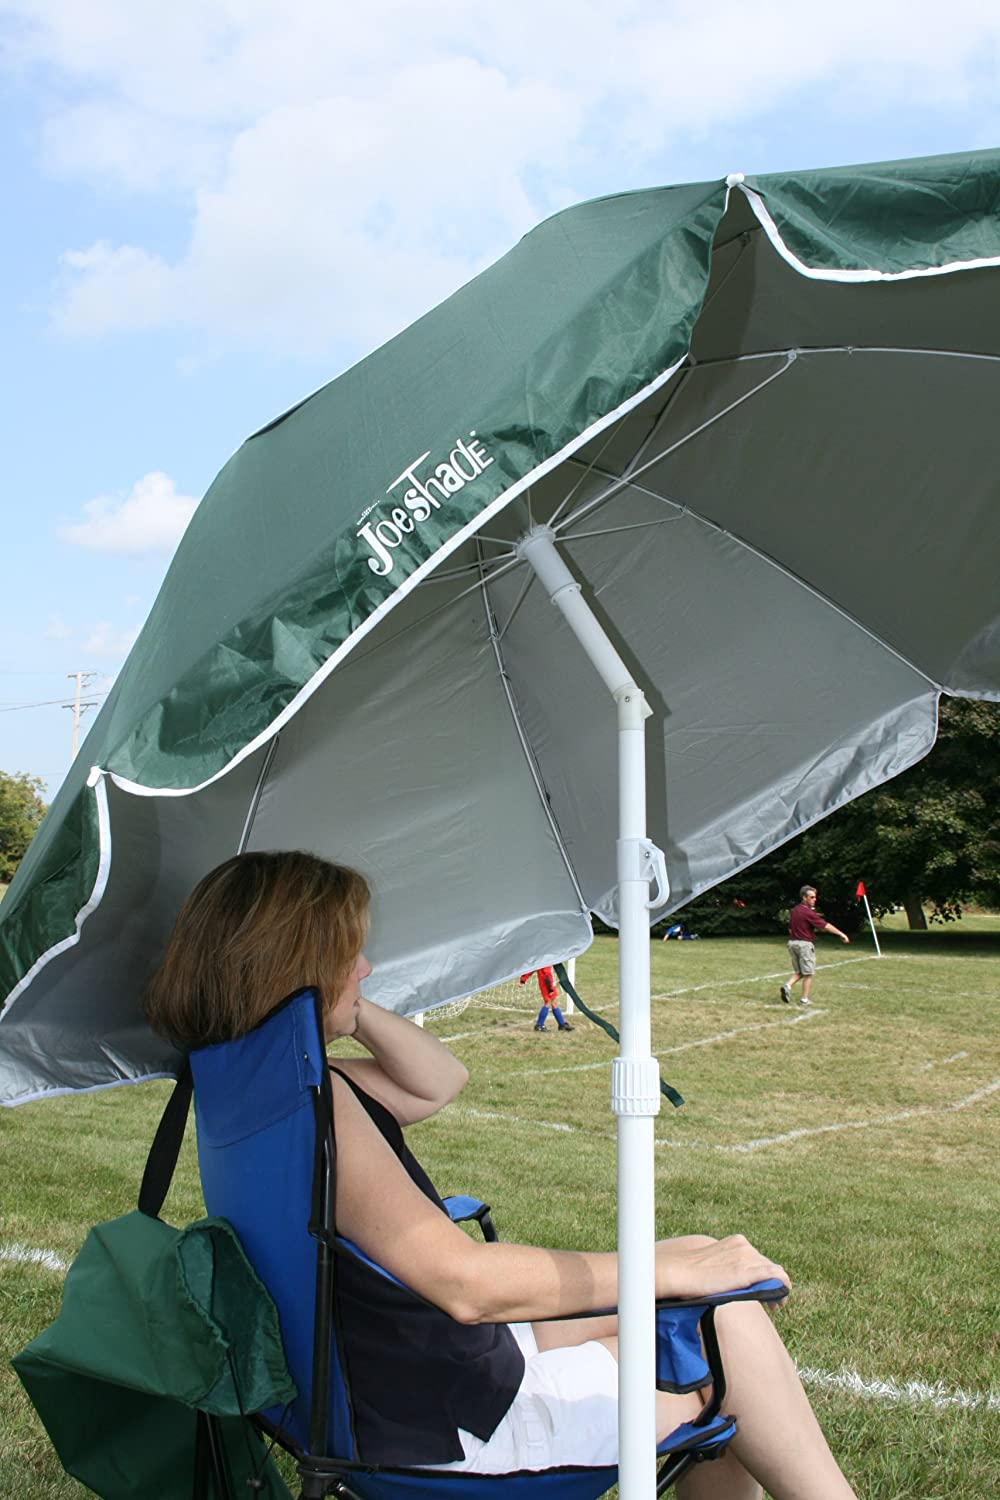 Amazon.com JoeShade Portable Sun Shade Umbrella Sunshade Umbrella Sports Umbrella BLUE Garden u0026 Outdoor & Amazon.com: JoeShade Portable Sun Shade Umbrella Sunshade ...